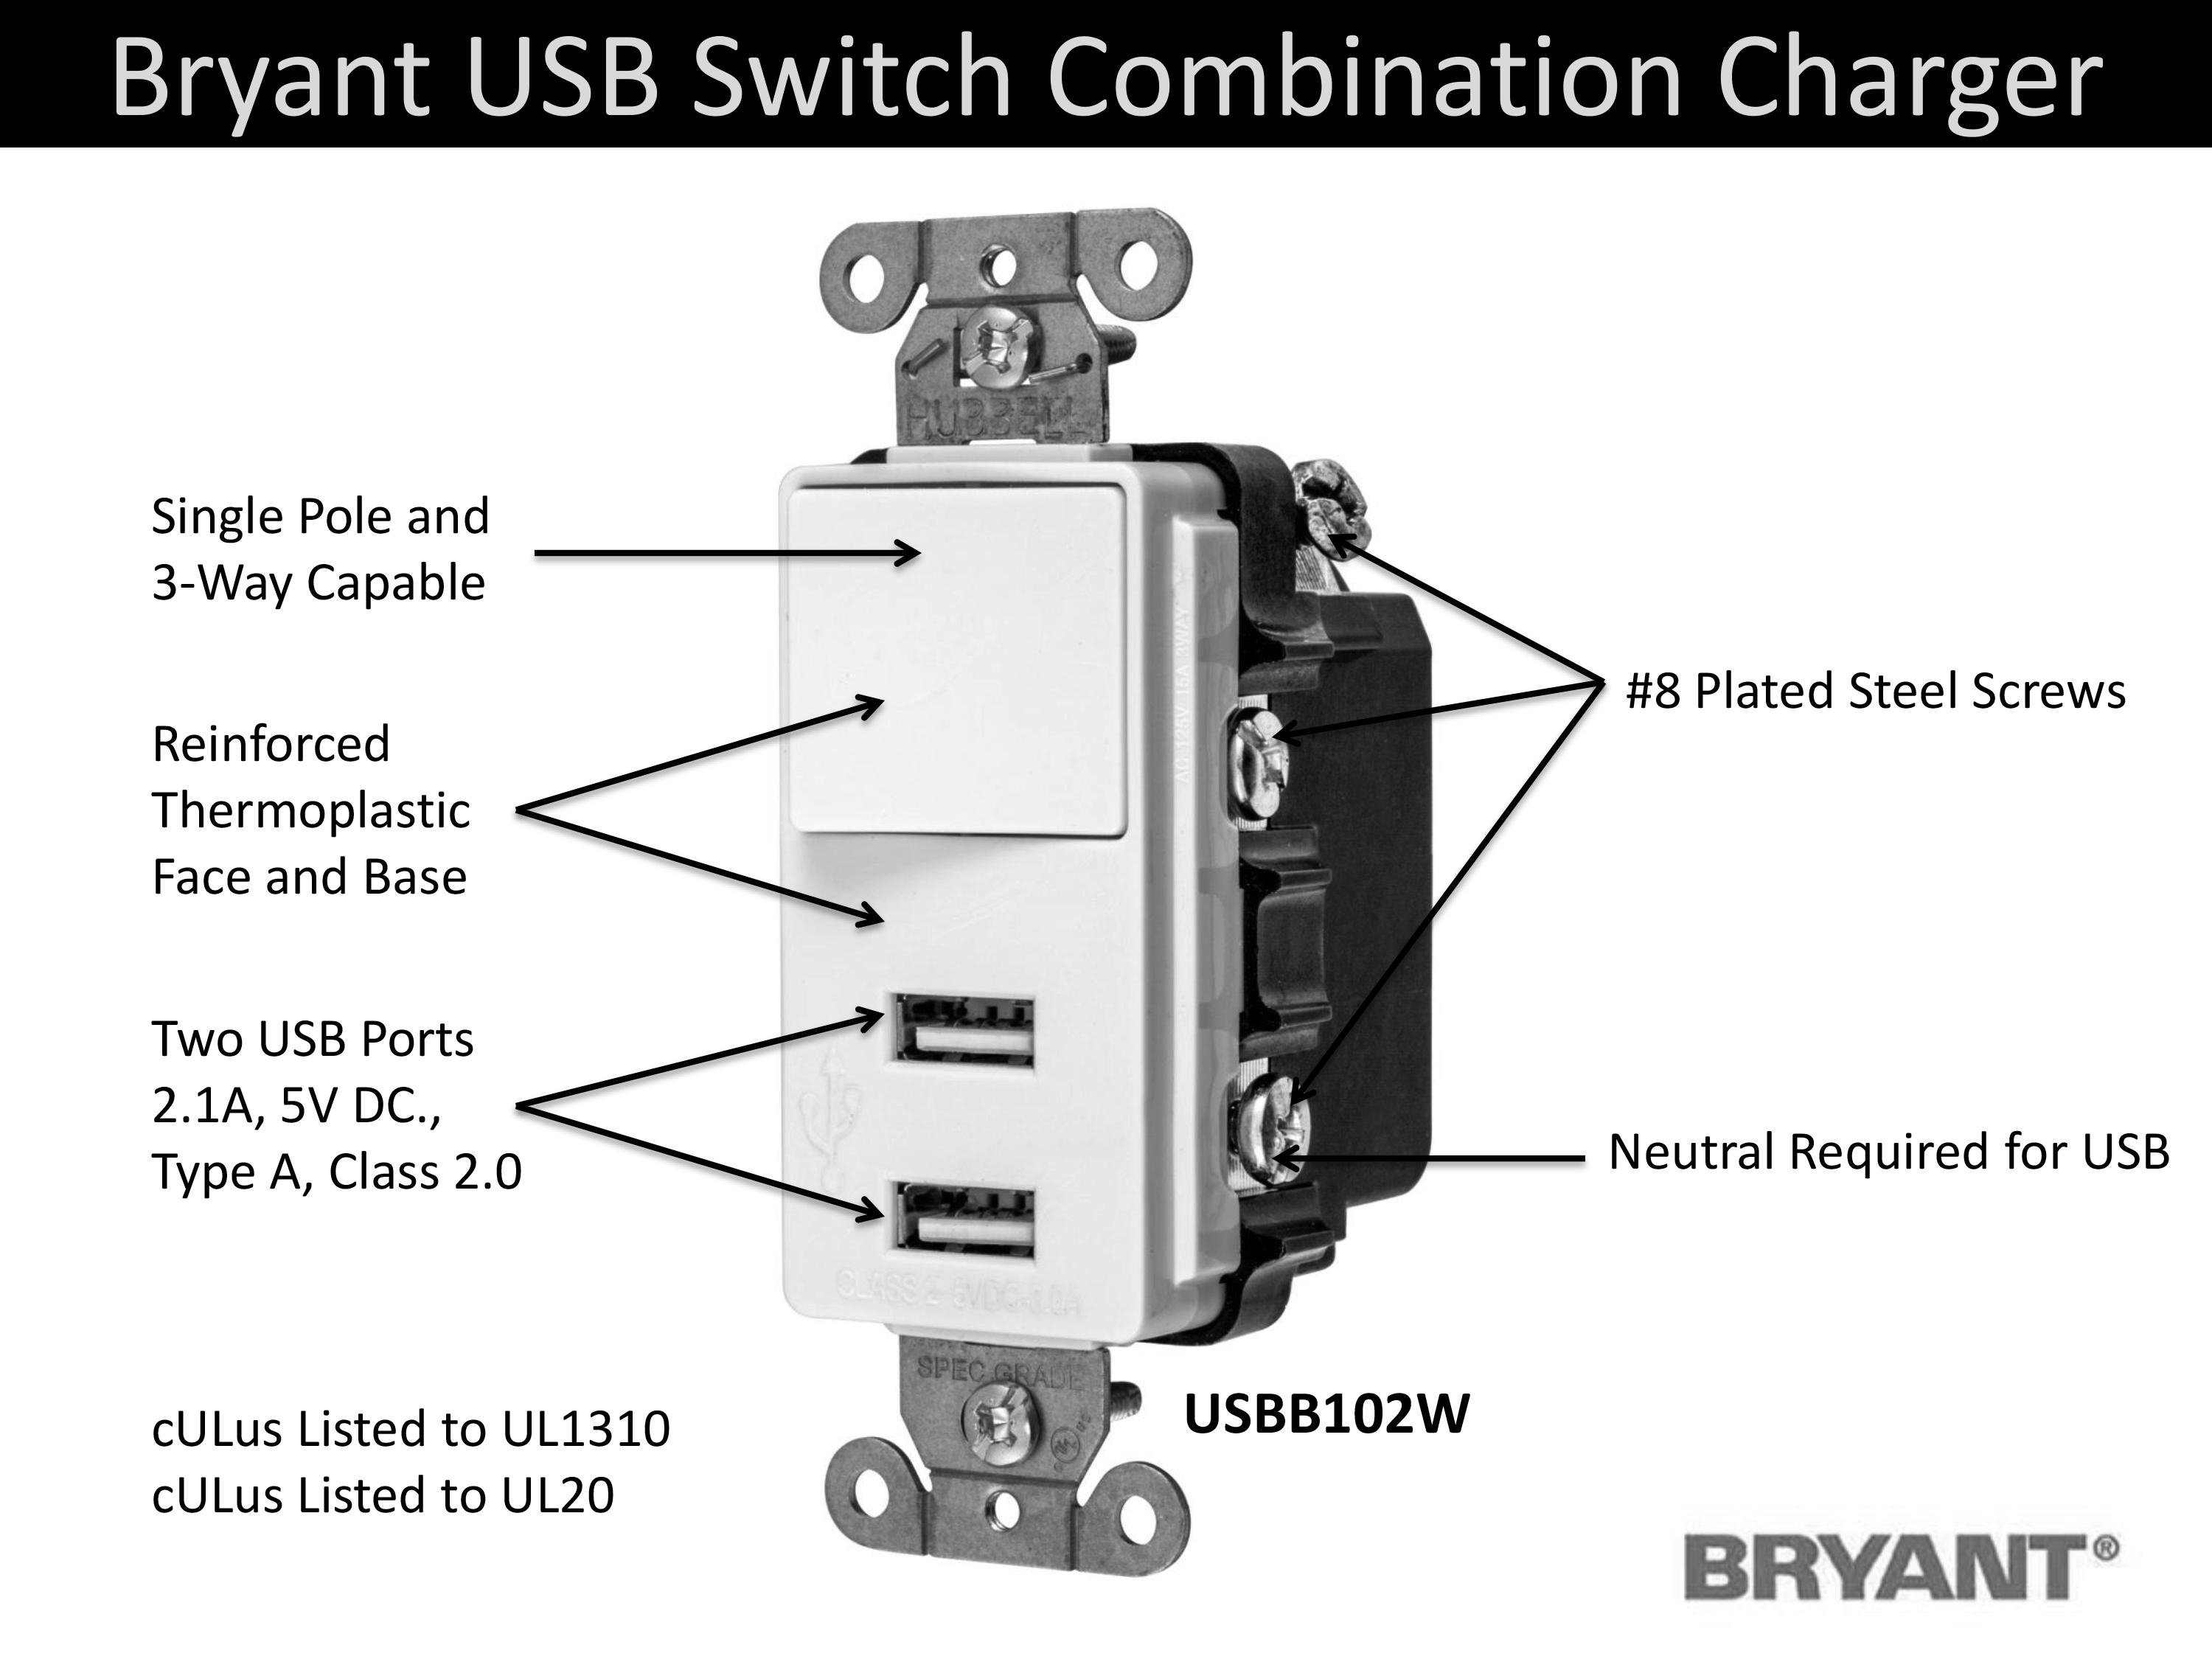 Bryant Electric Usbb102w 15 Amp 125v Decorator Usb Switch Gold On Black Wall Wiring Add Charging In Locations Typically Reserved For Switches